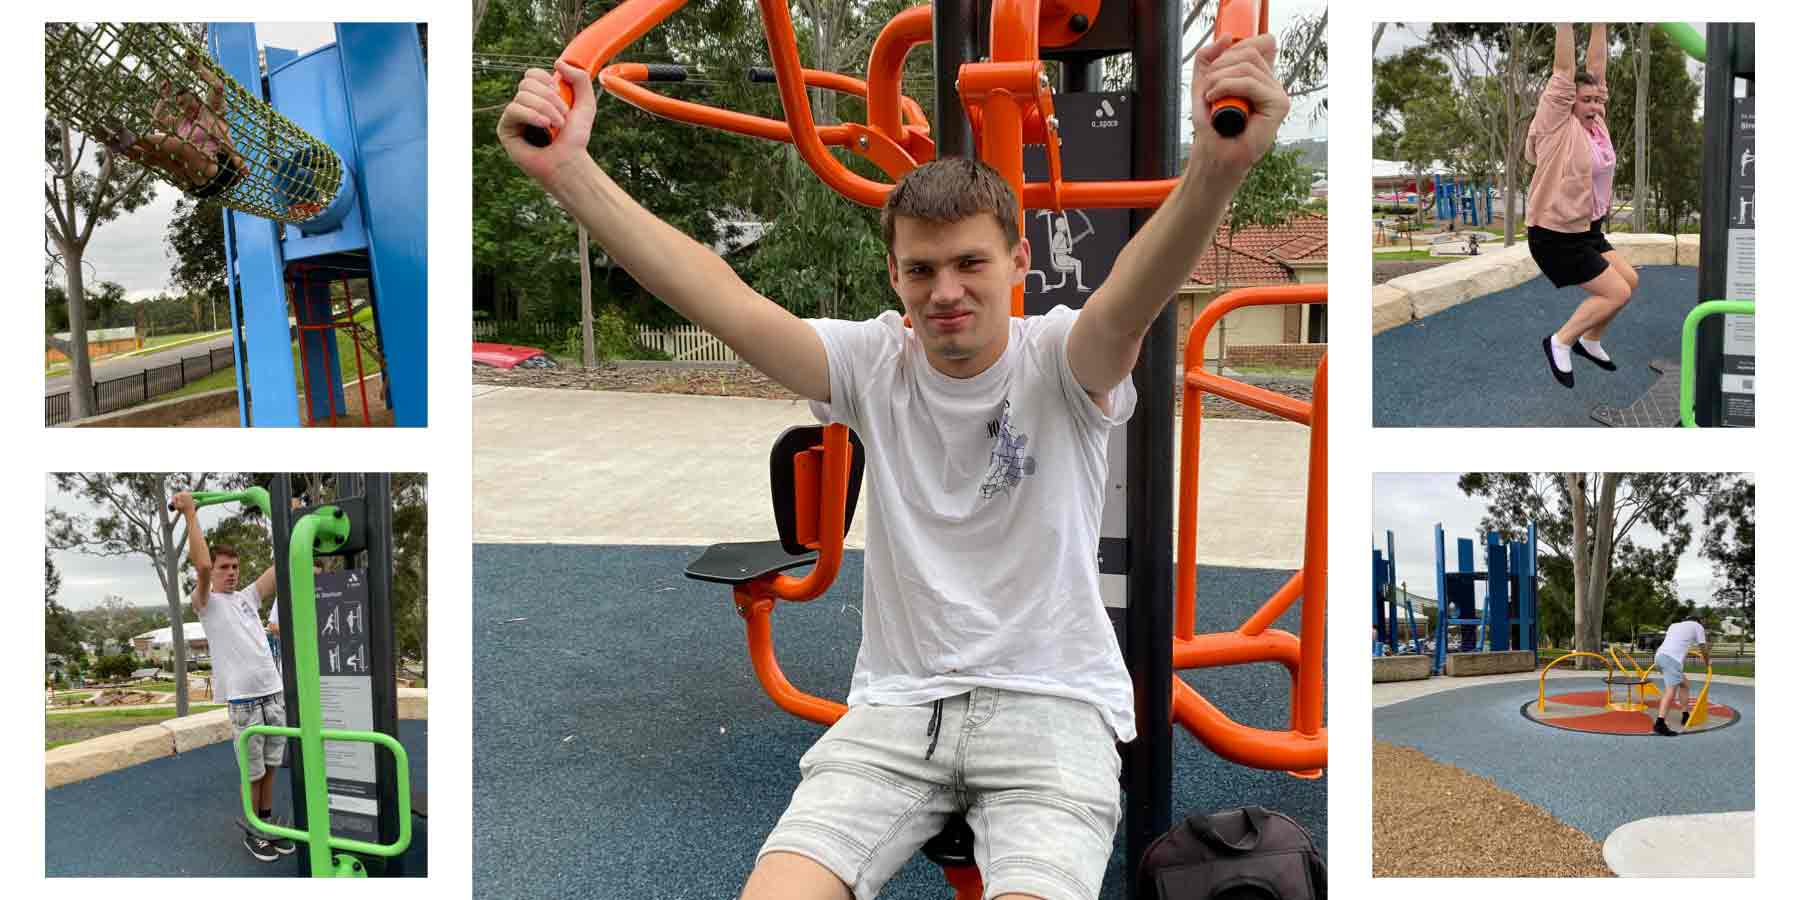 A collage of images of five different people using different pieces of exercise equipment in a park